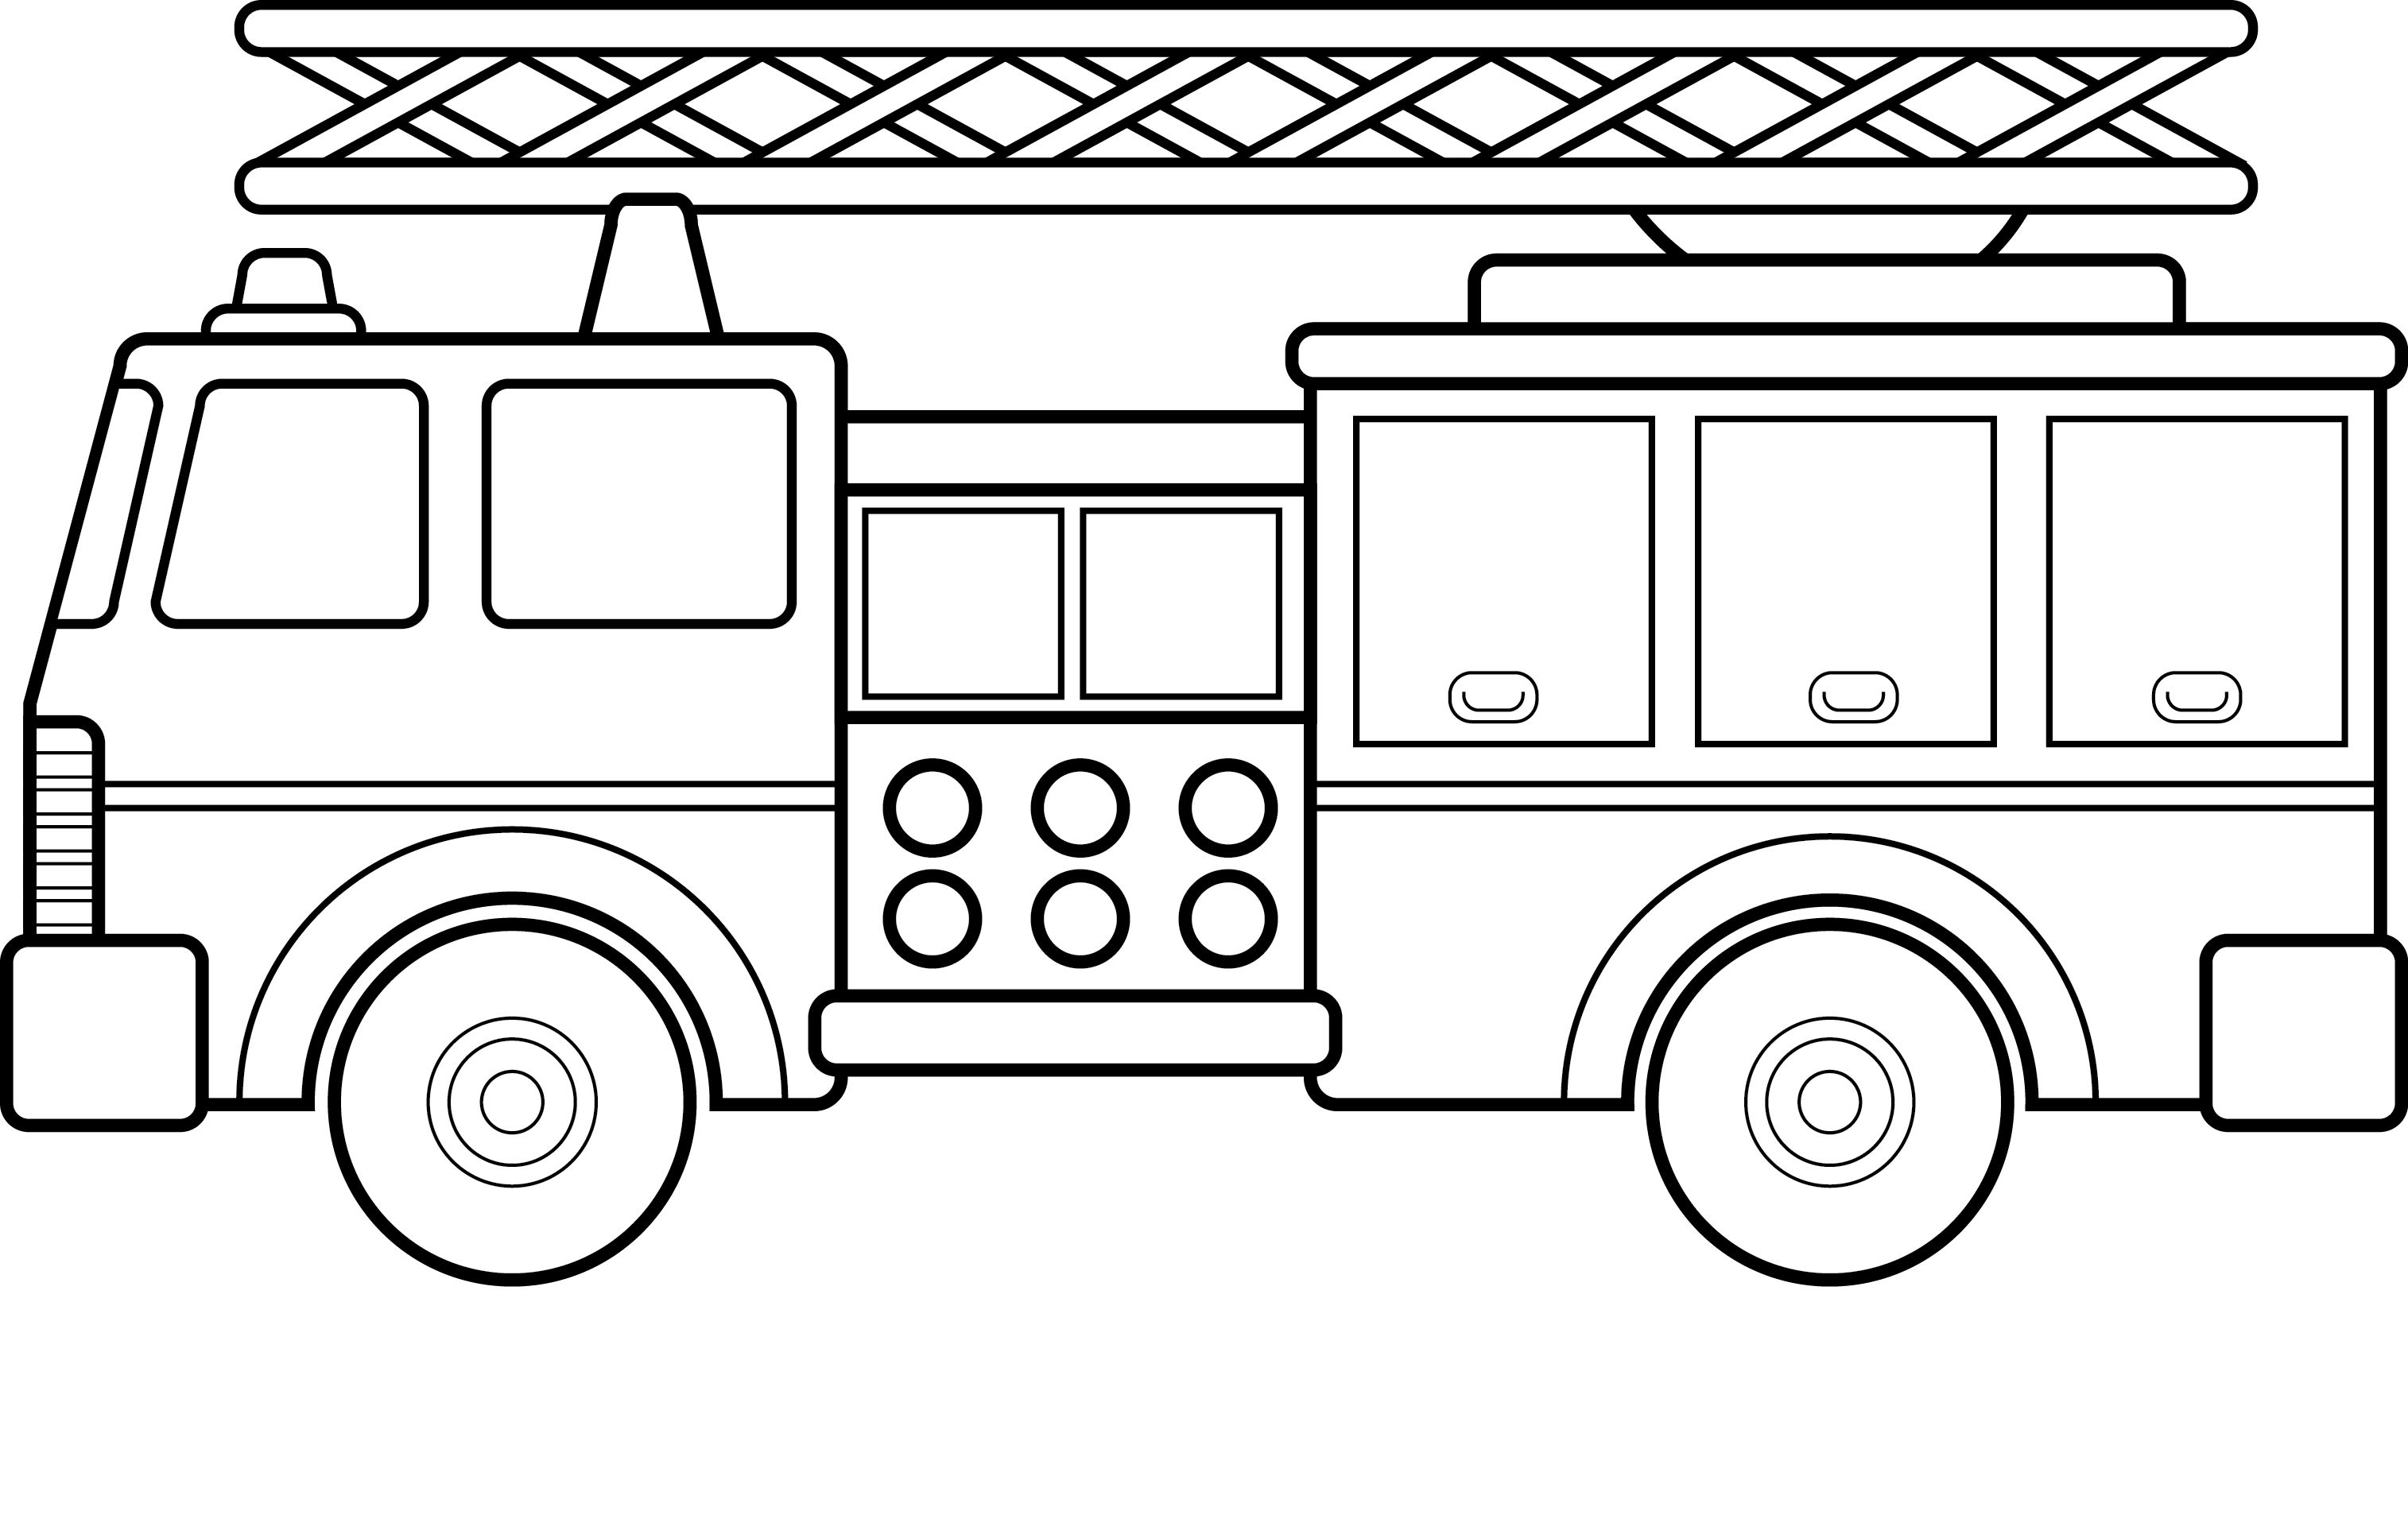 mater the truck coloring pages truck coloring pages free